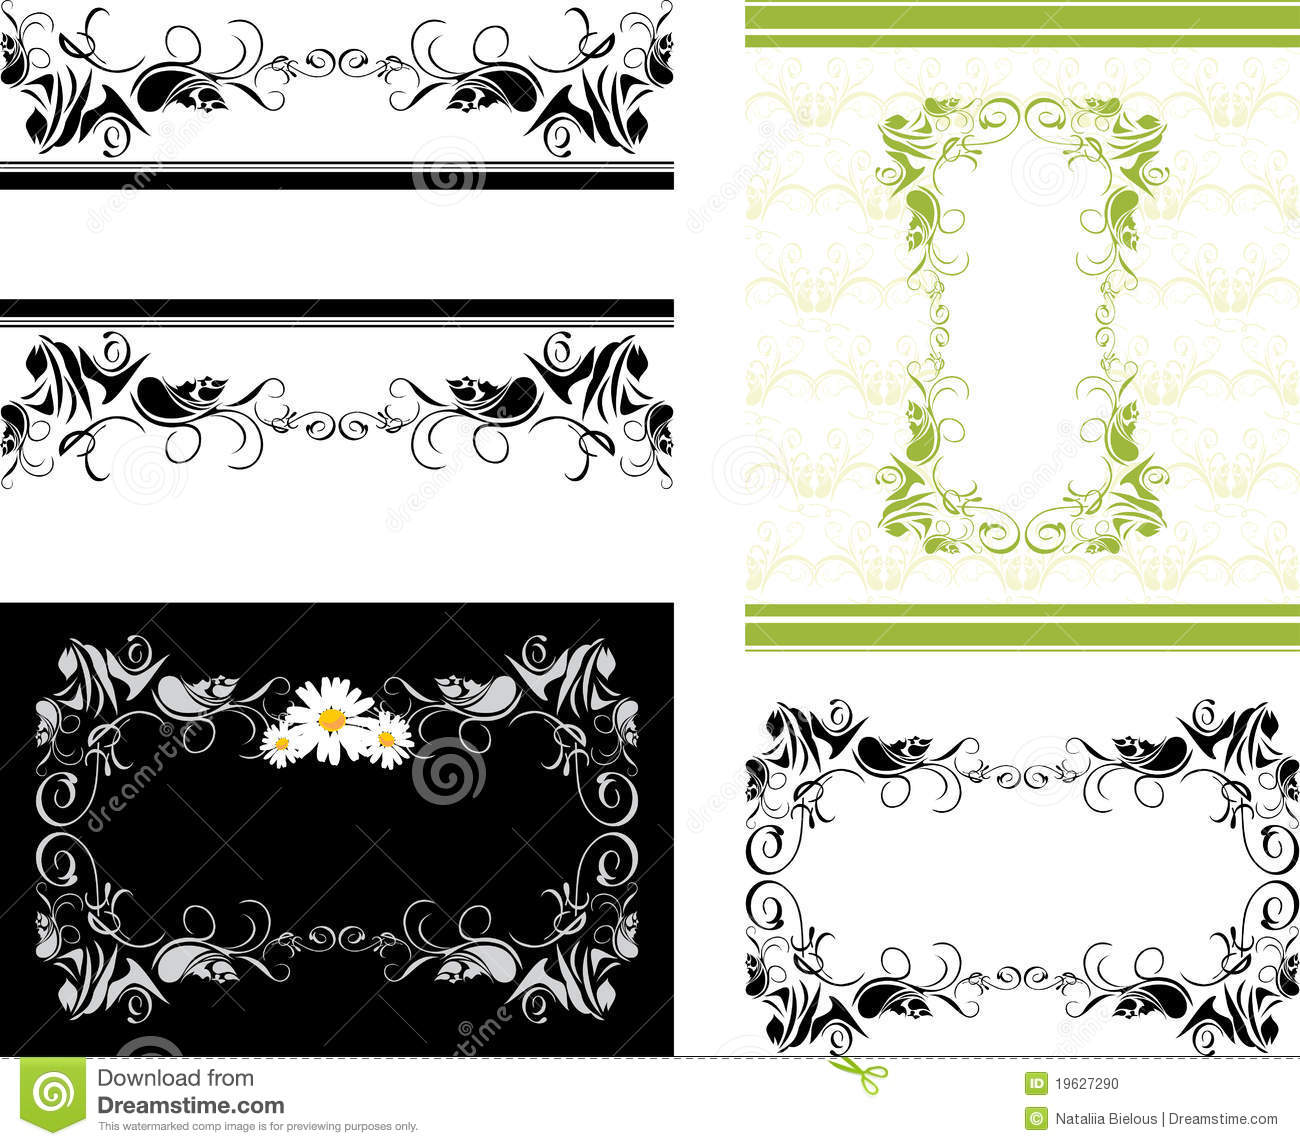 Marcos Decorativos Bordes Decorativos Para Invitaciones Boda And Post Hawaii